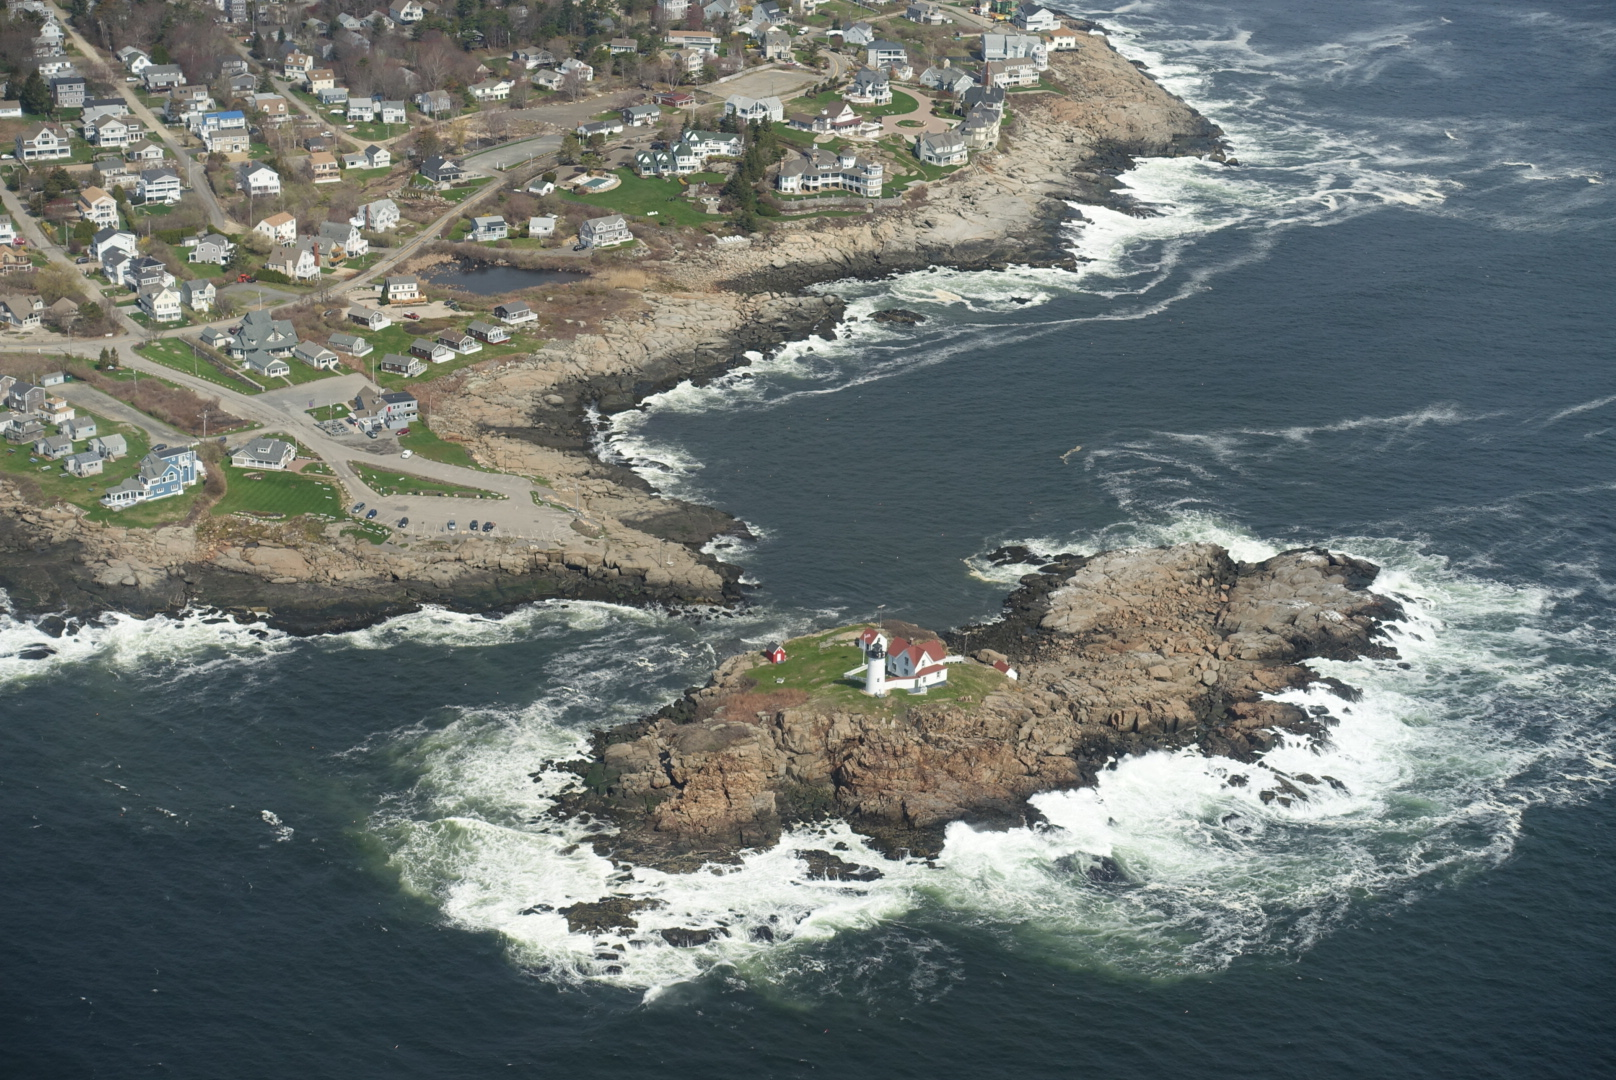 Southern coast of Maine - Nubble light from a plane